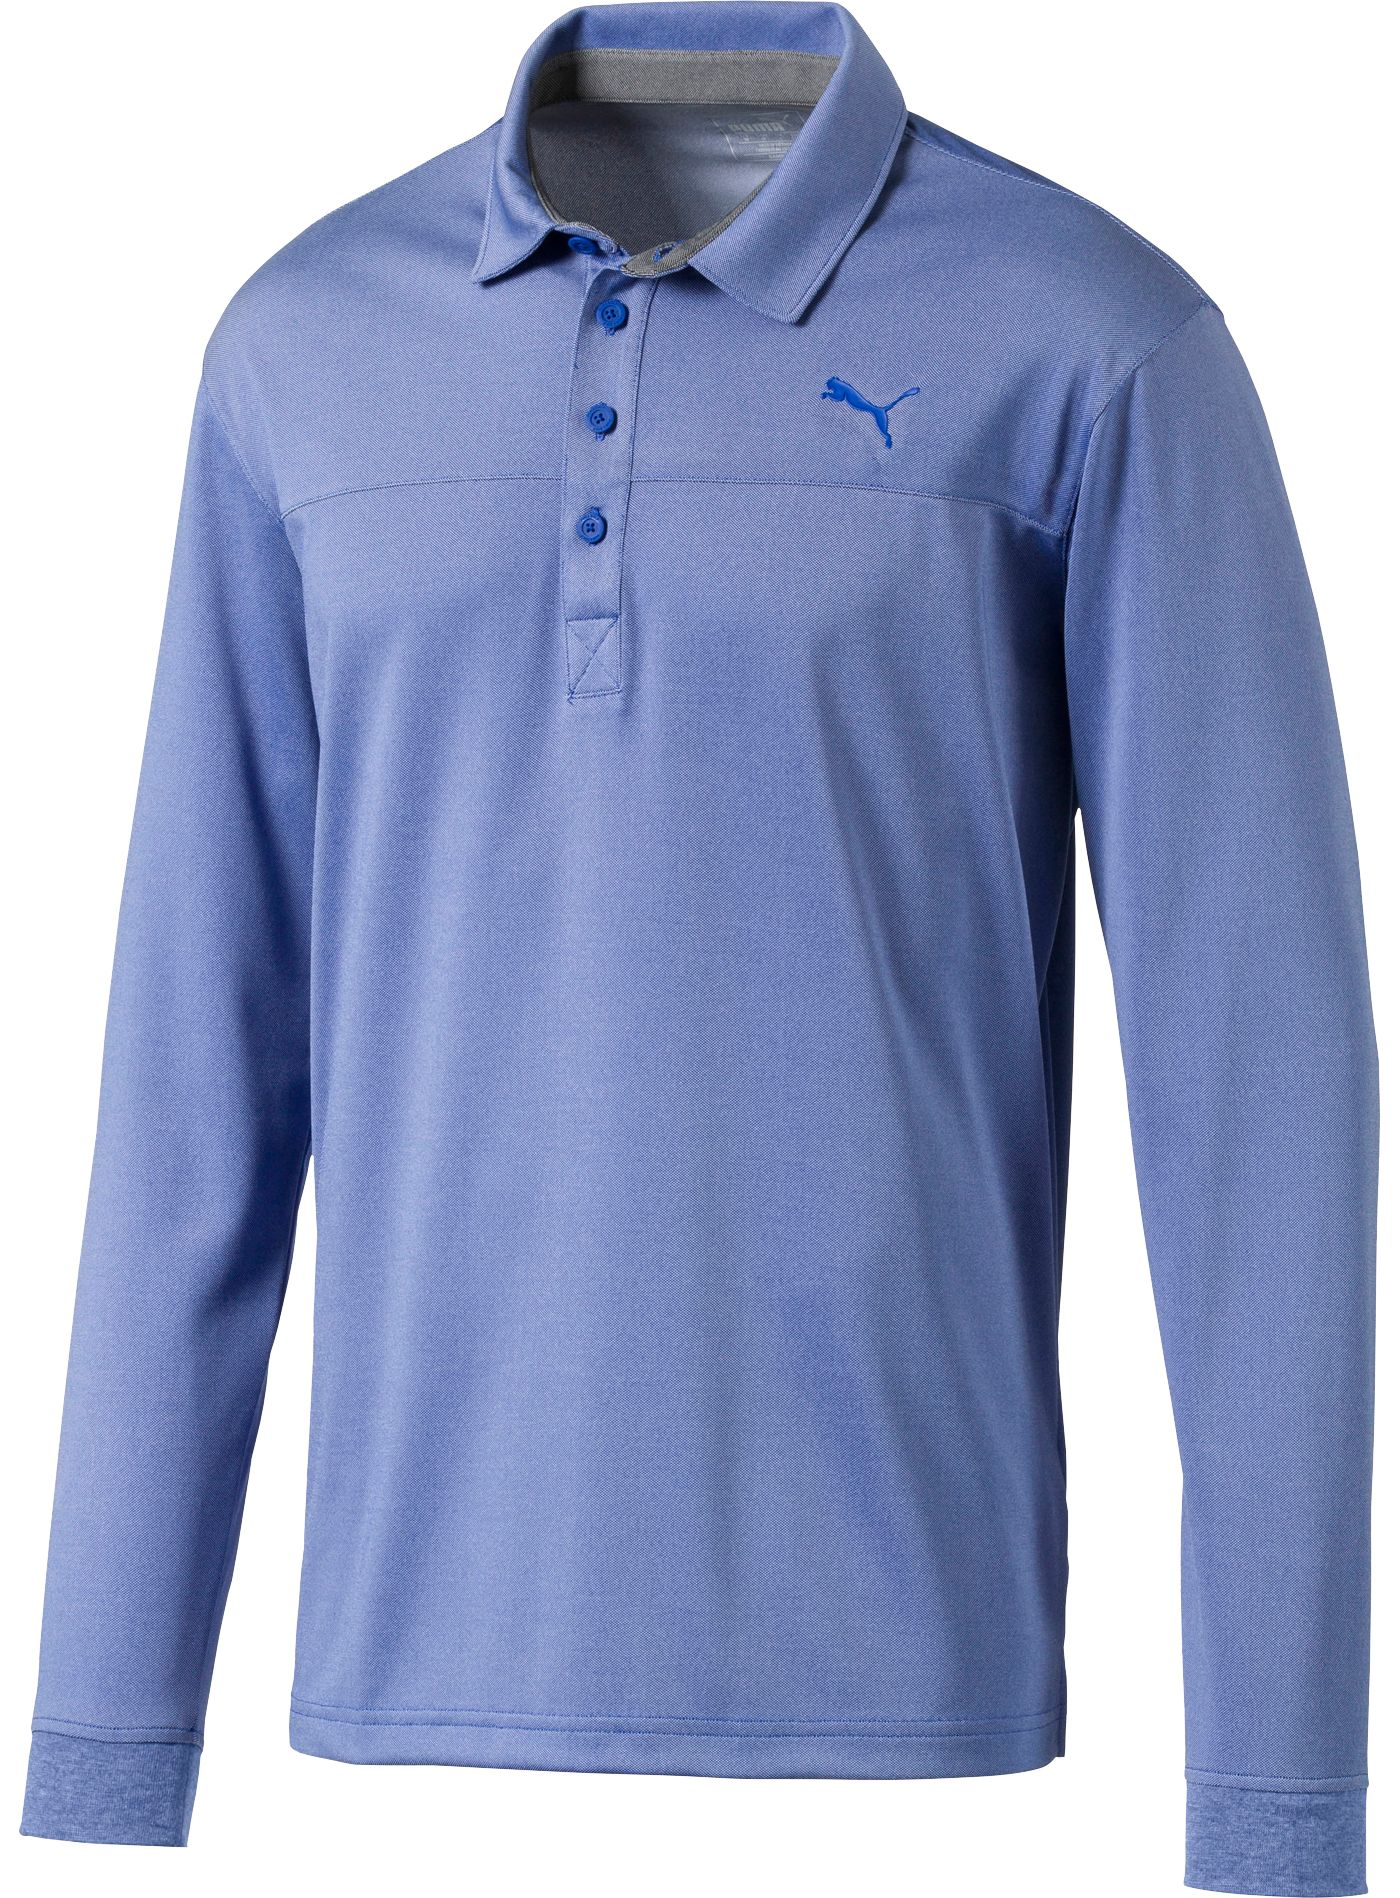 PUMA Men's Long Sleeve Golf Polo